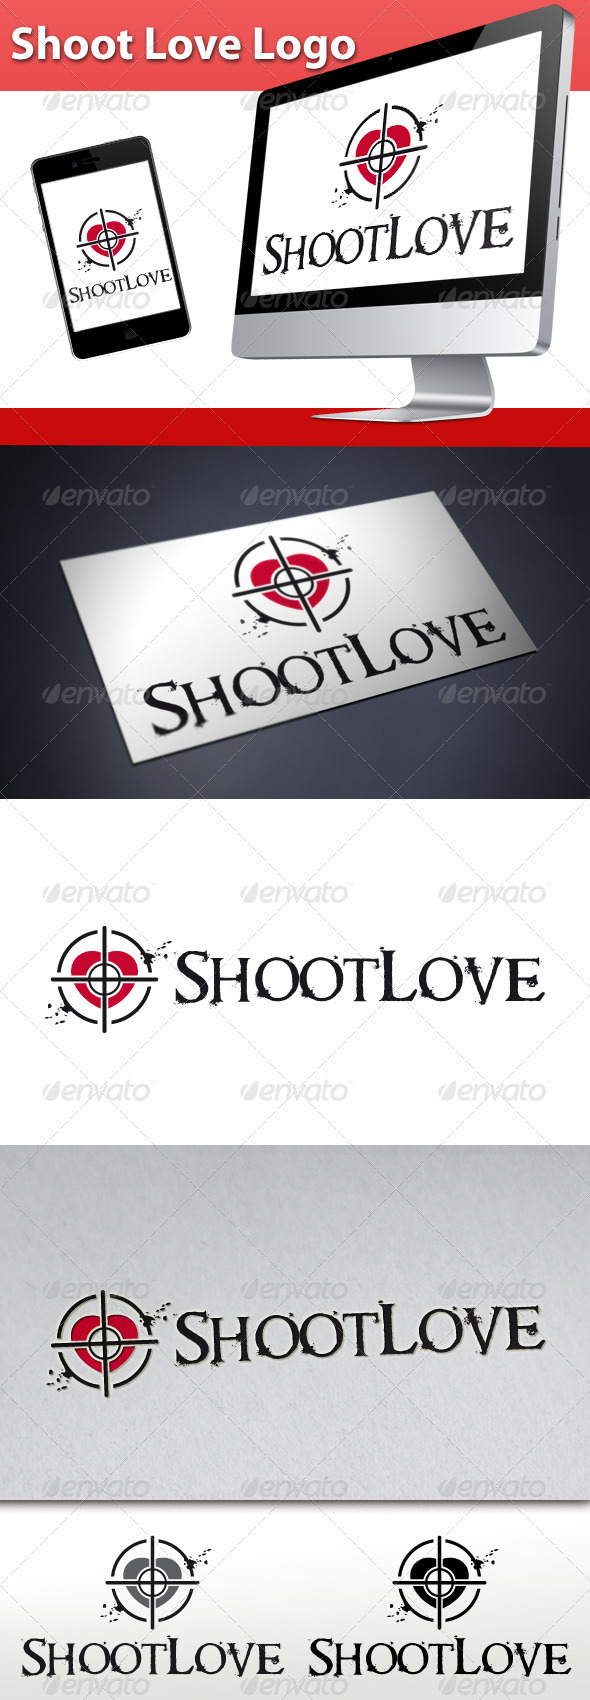 Shoot Love Logo - Symbols Logo Templates